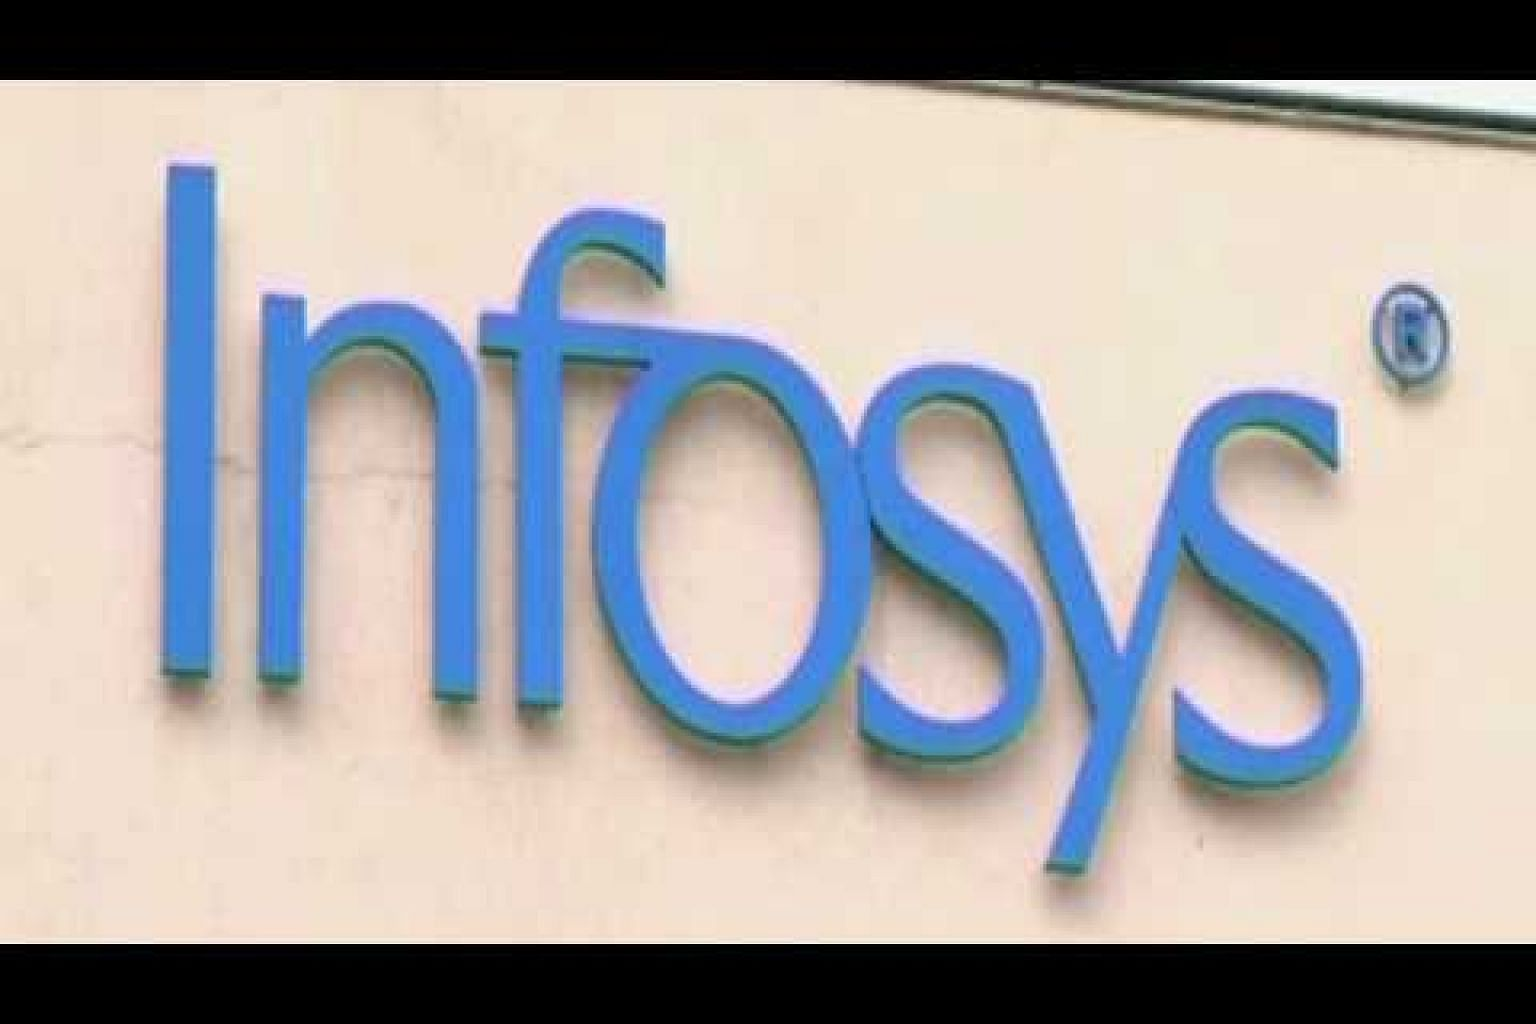 Infosys to hire 10,000 US workers